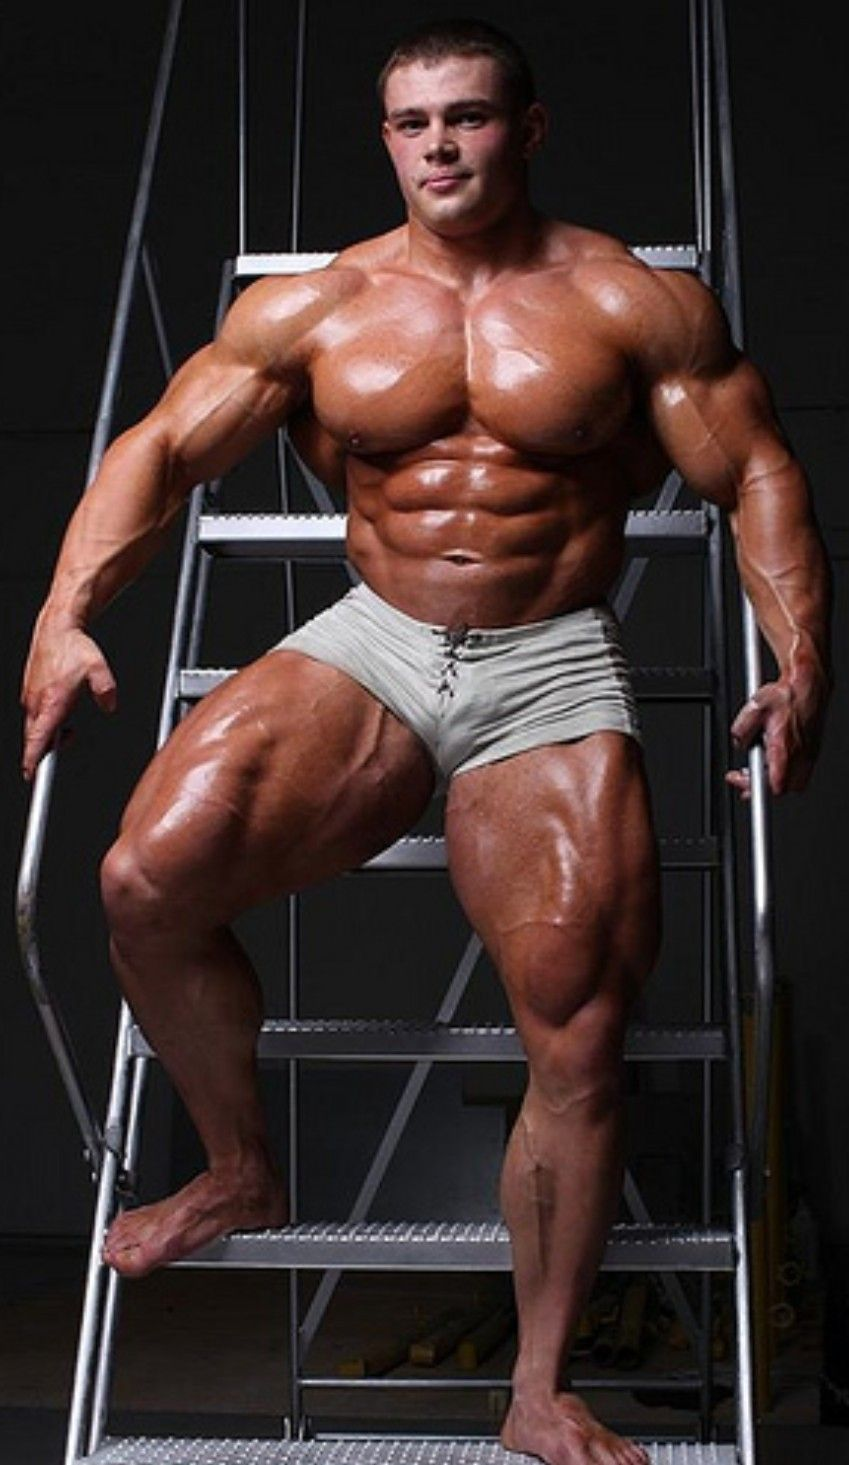 Submissive muscle men